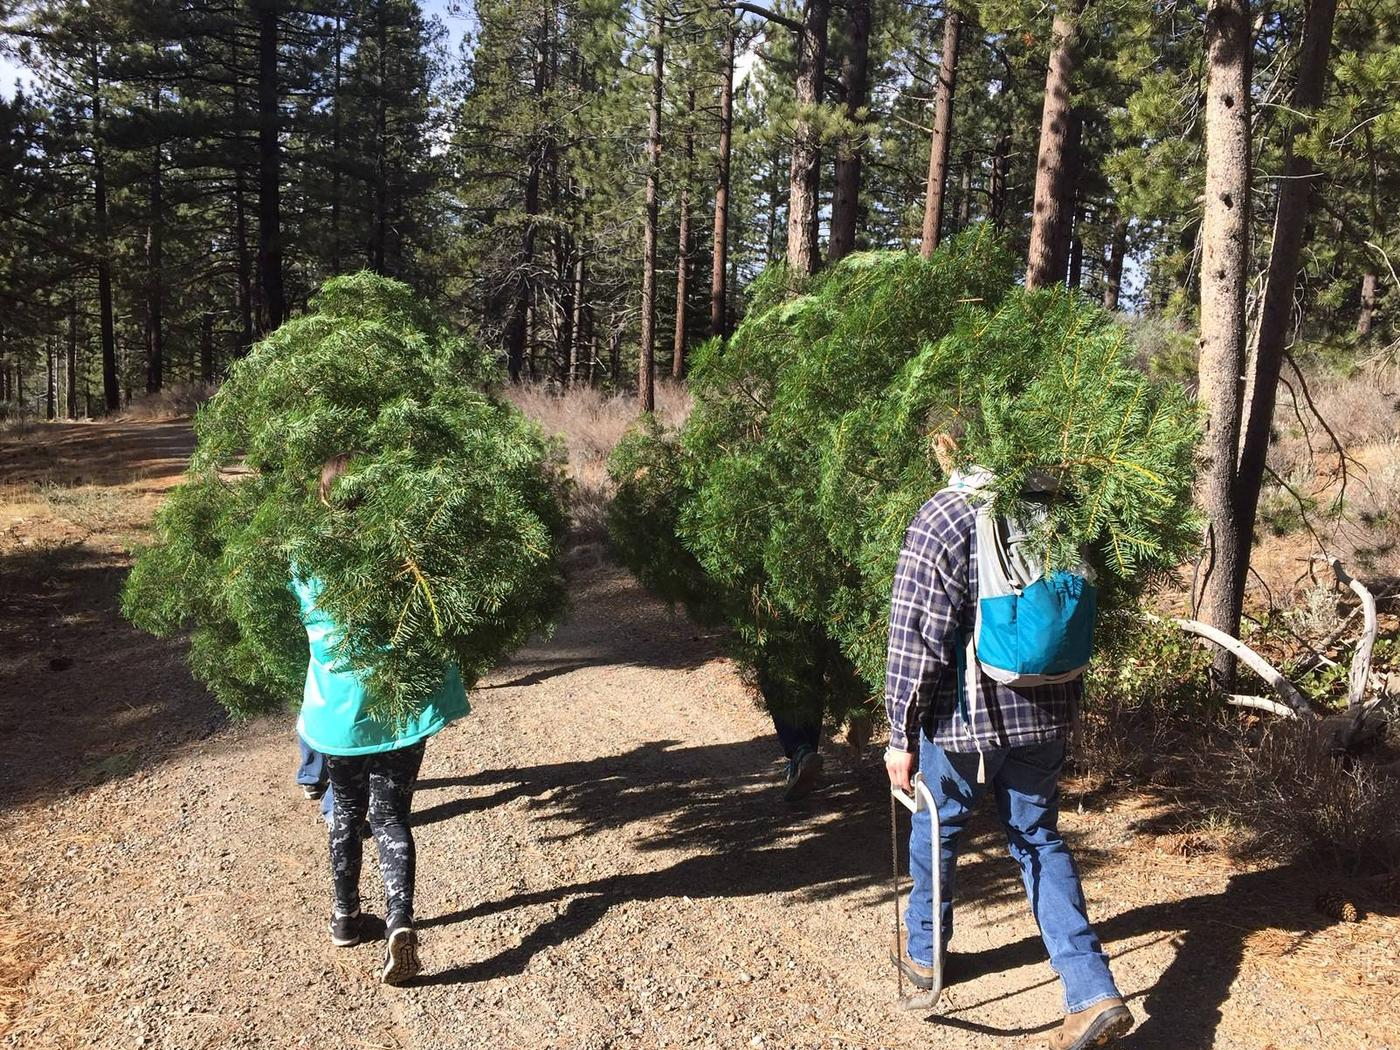 People carry their Christmas trees.Visitors carry their Christmas trees down a dirt road.